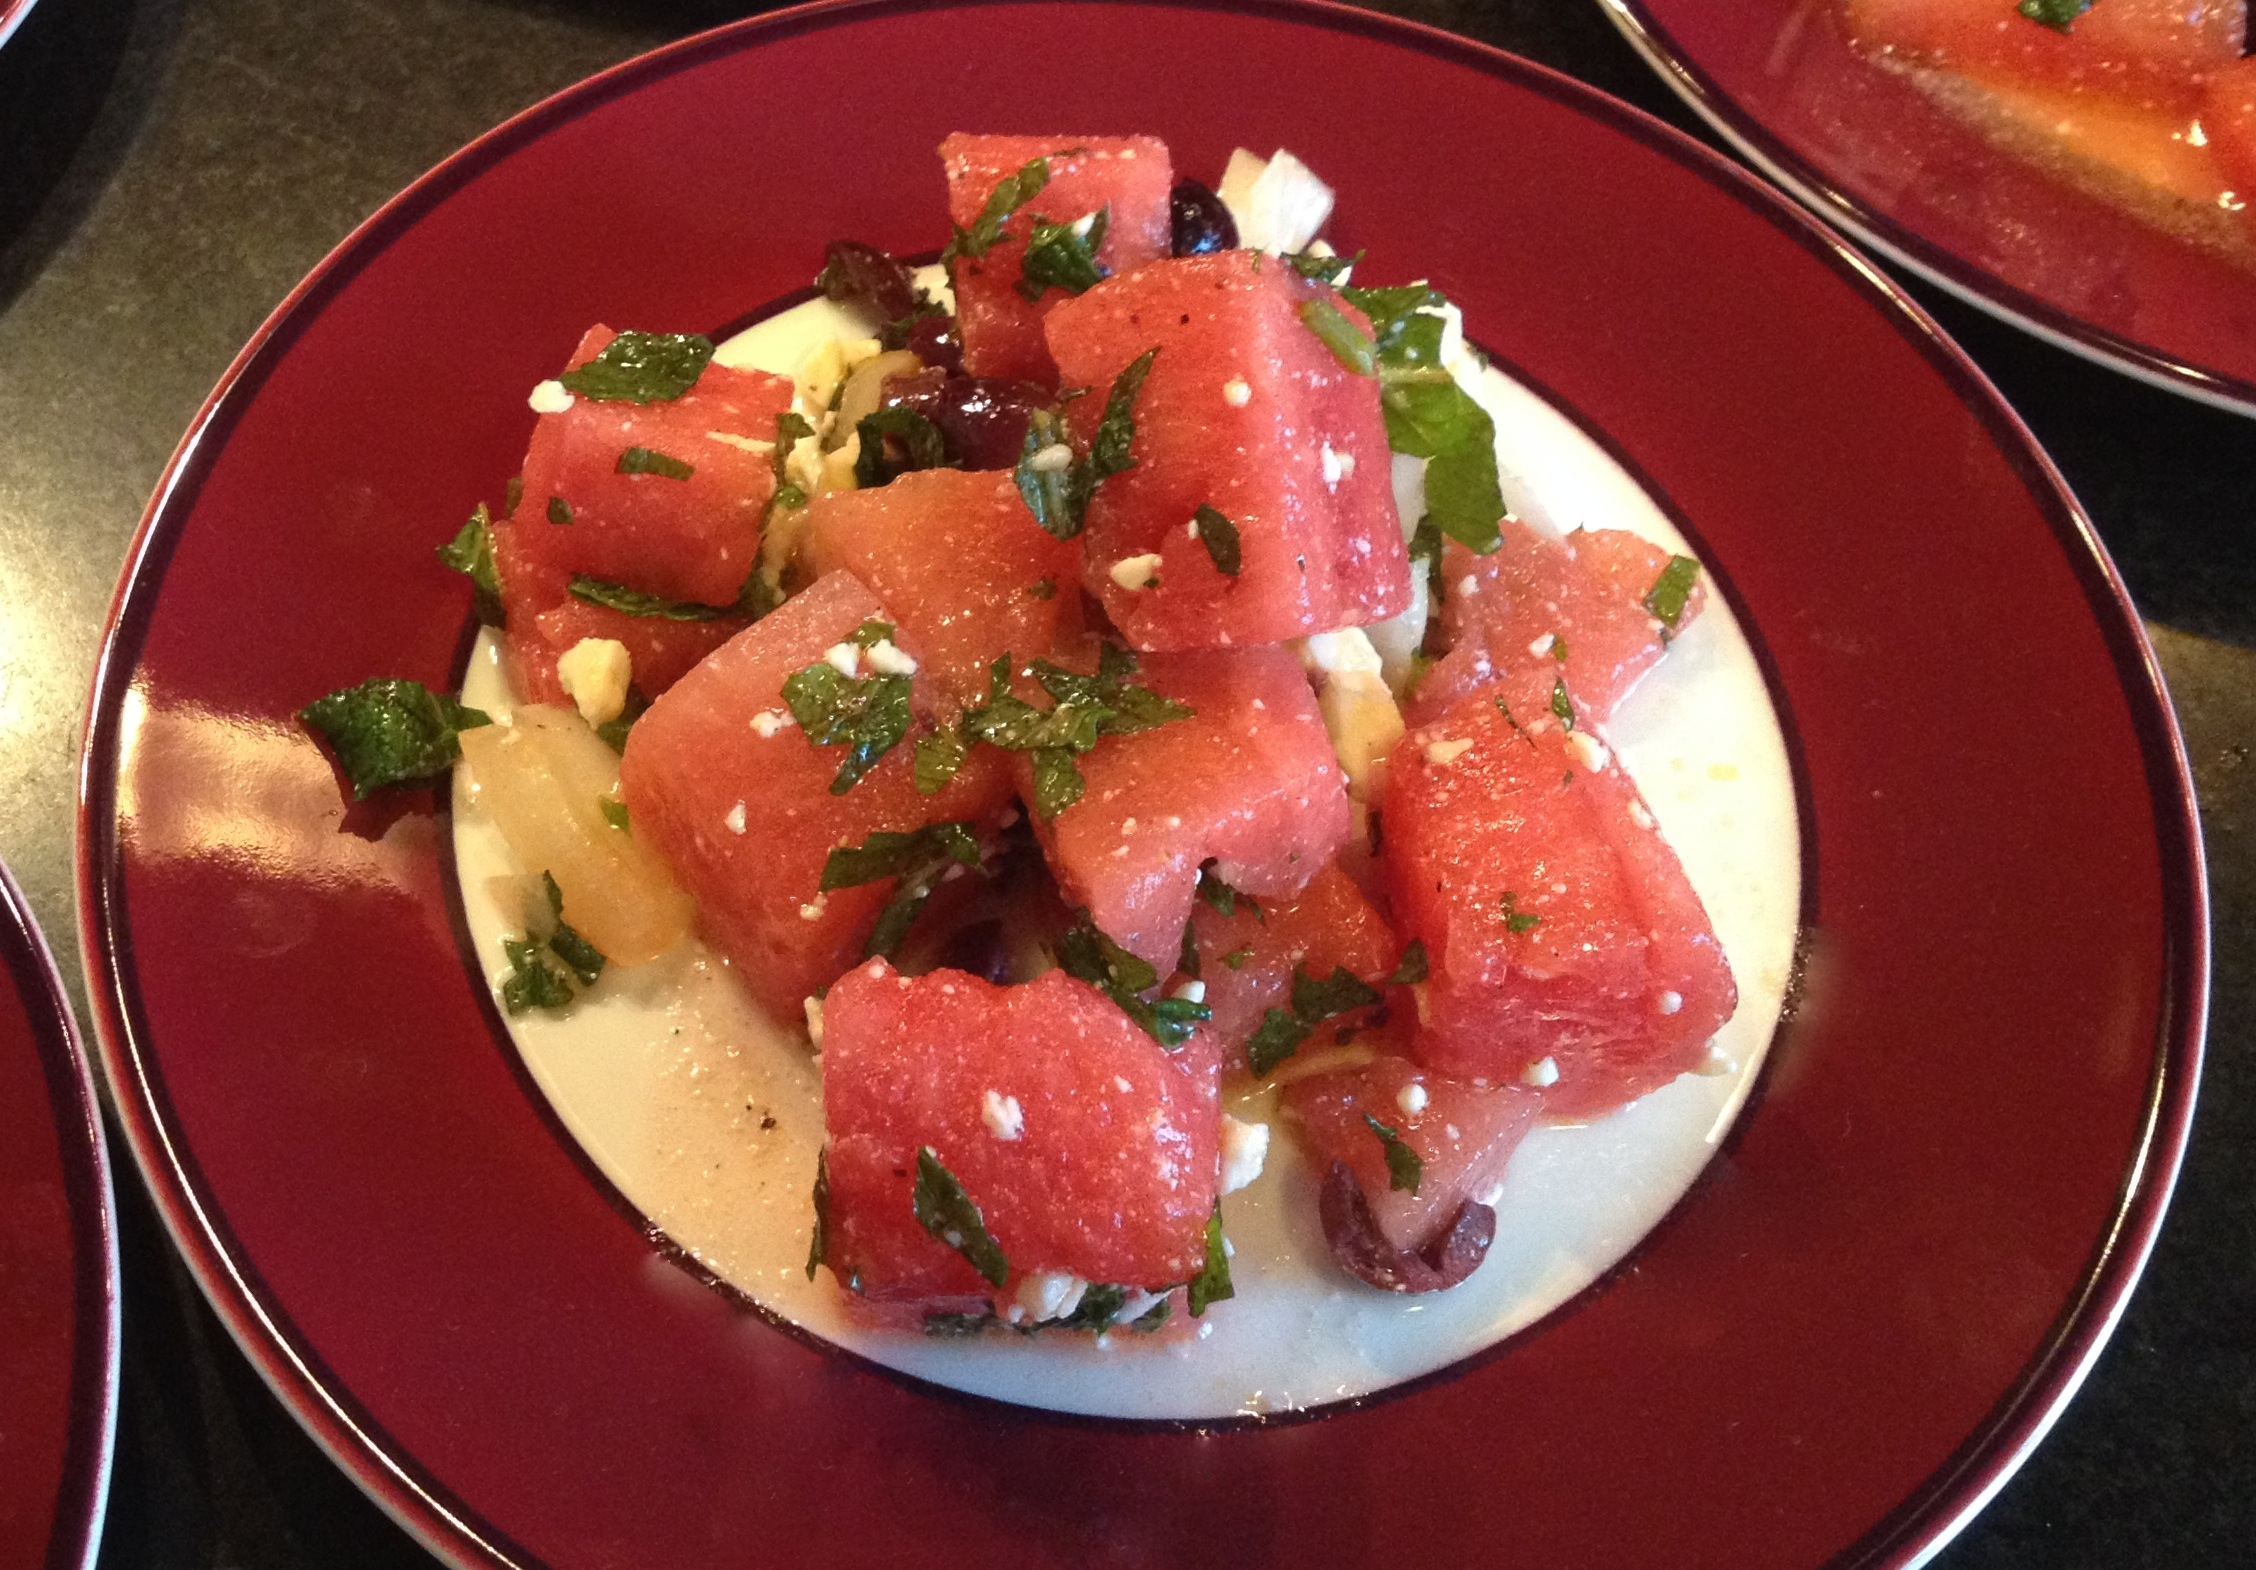 Watermelon salad with feta and mint on a burgundy trimmed plate.